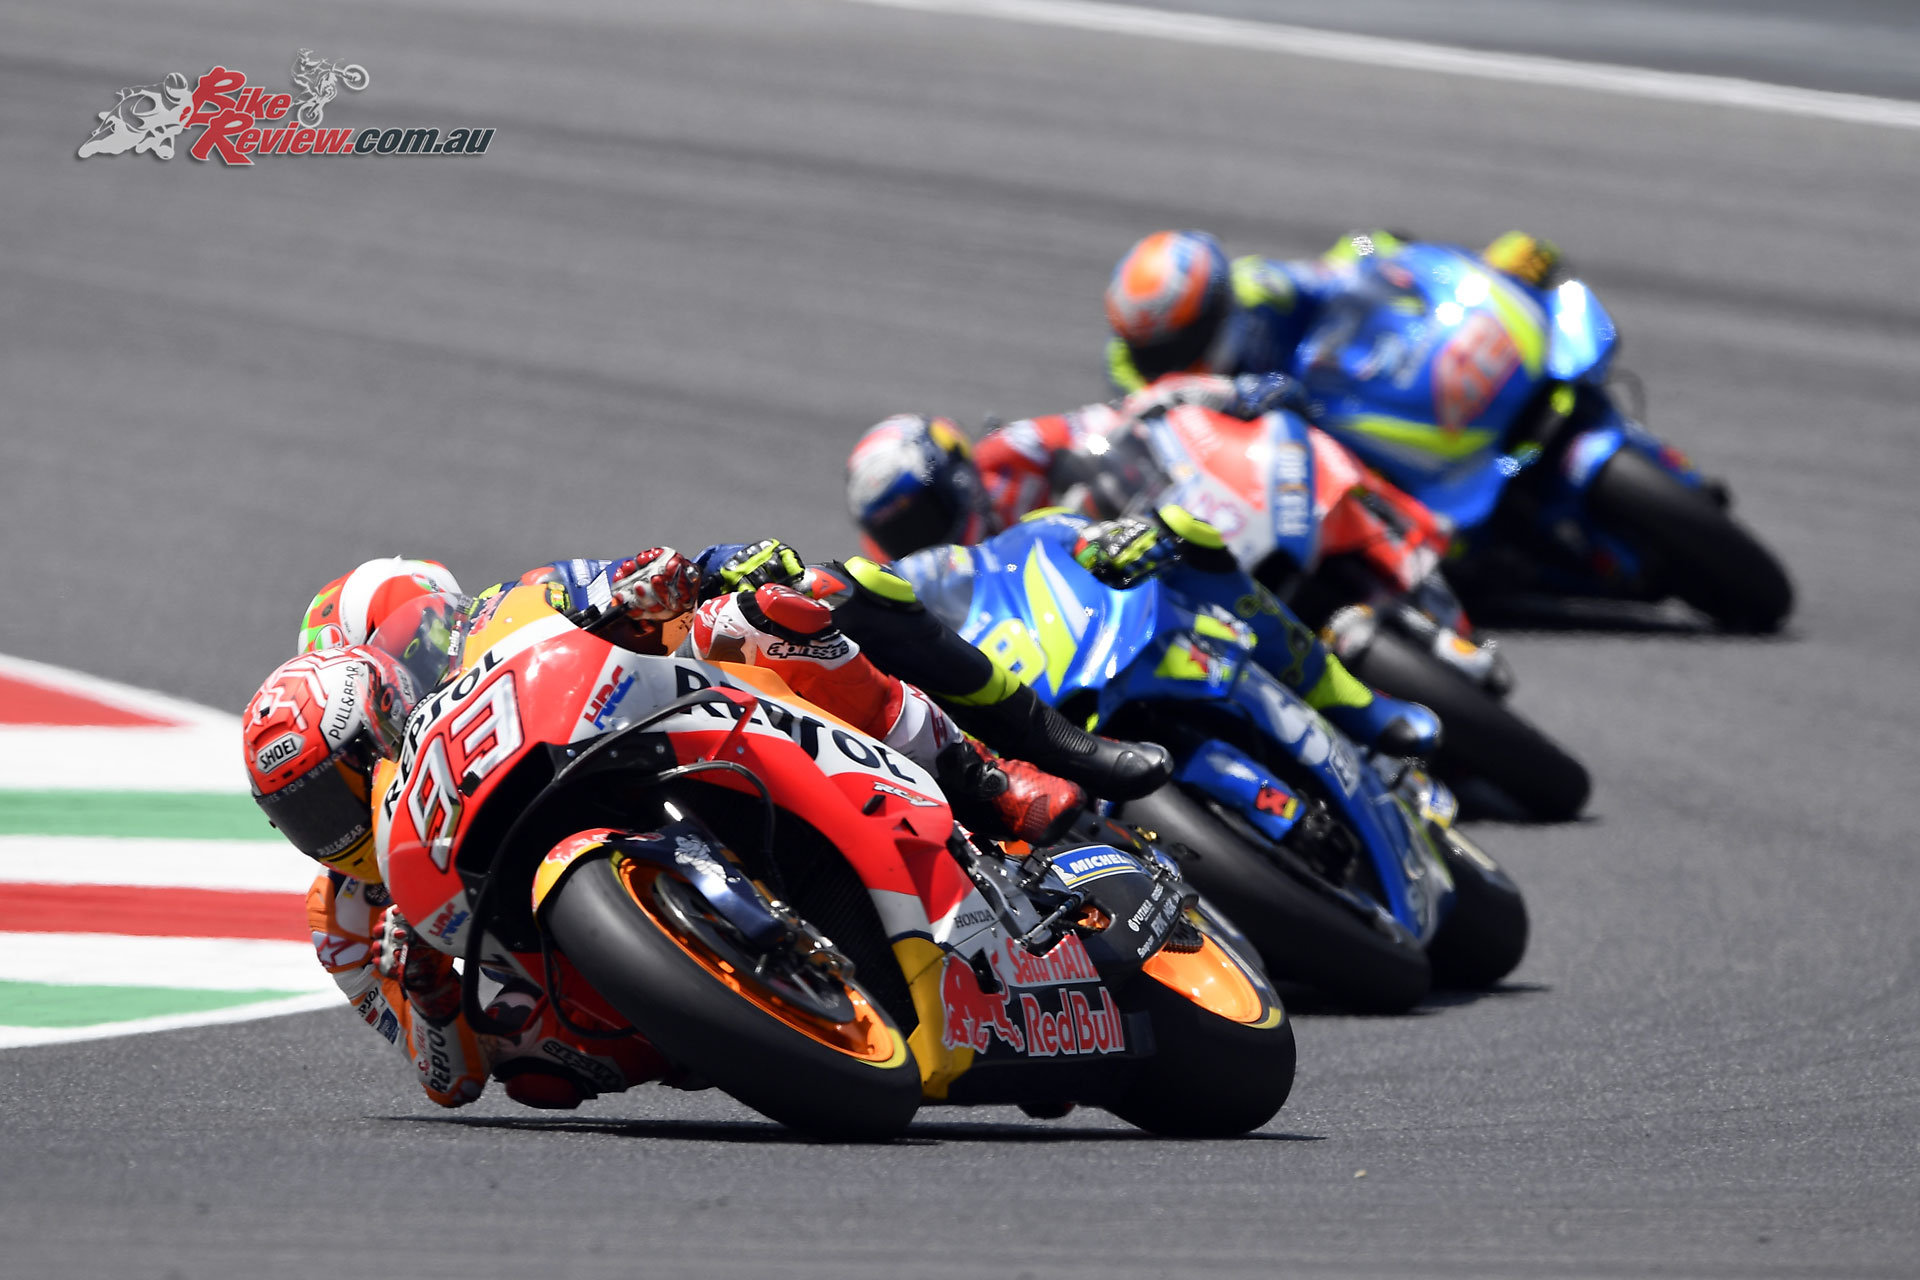 Marc Marquez would crash out of the race and remount but not score points